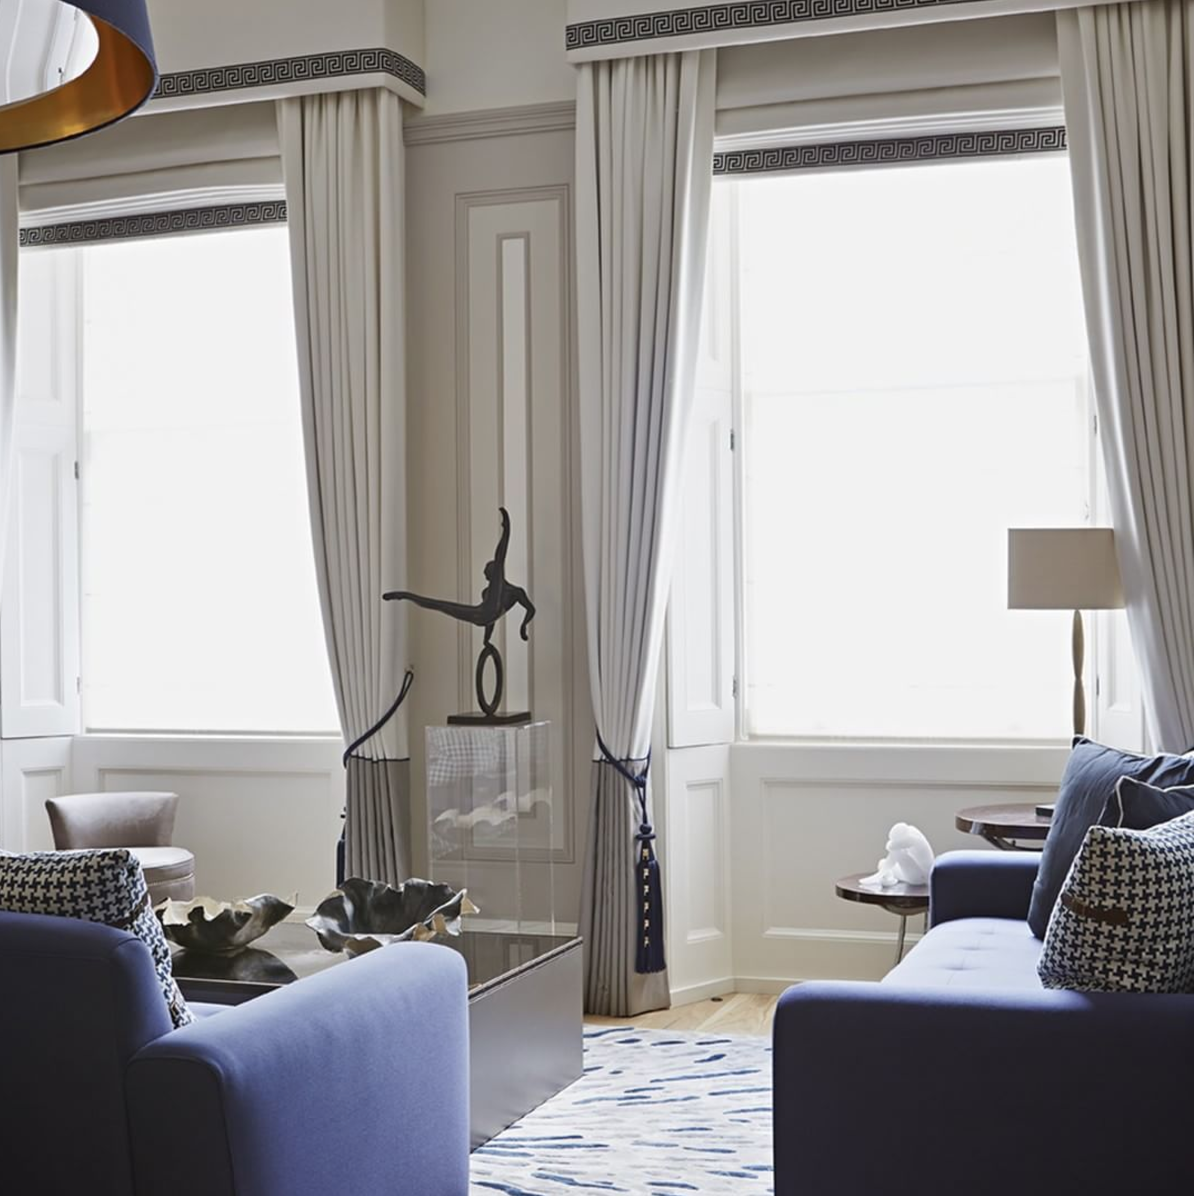 Two Bedroom Apartments London: Latest Living Room Designs, London Living